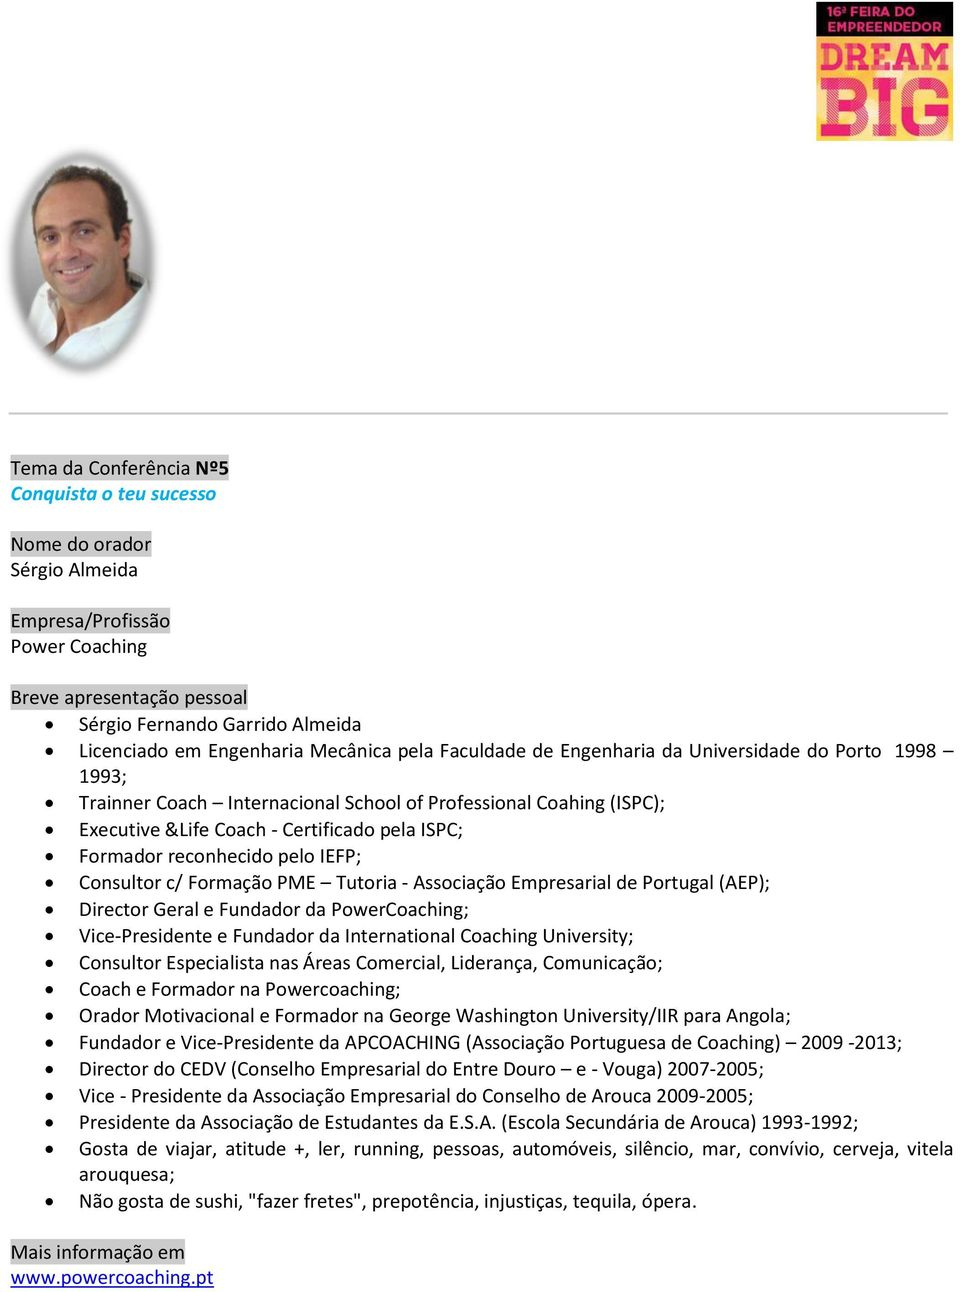 Associação Empresarial de Portugal (AEP); Director Geral e Fundador da PowerCoaching; Vice-Presidente e Fundador da International Coaching University; Consultor Especialista nas Áreas Comercial,